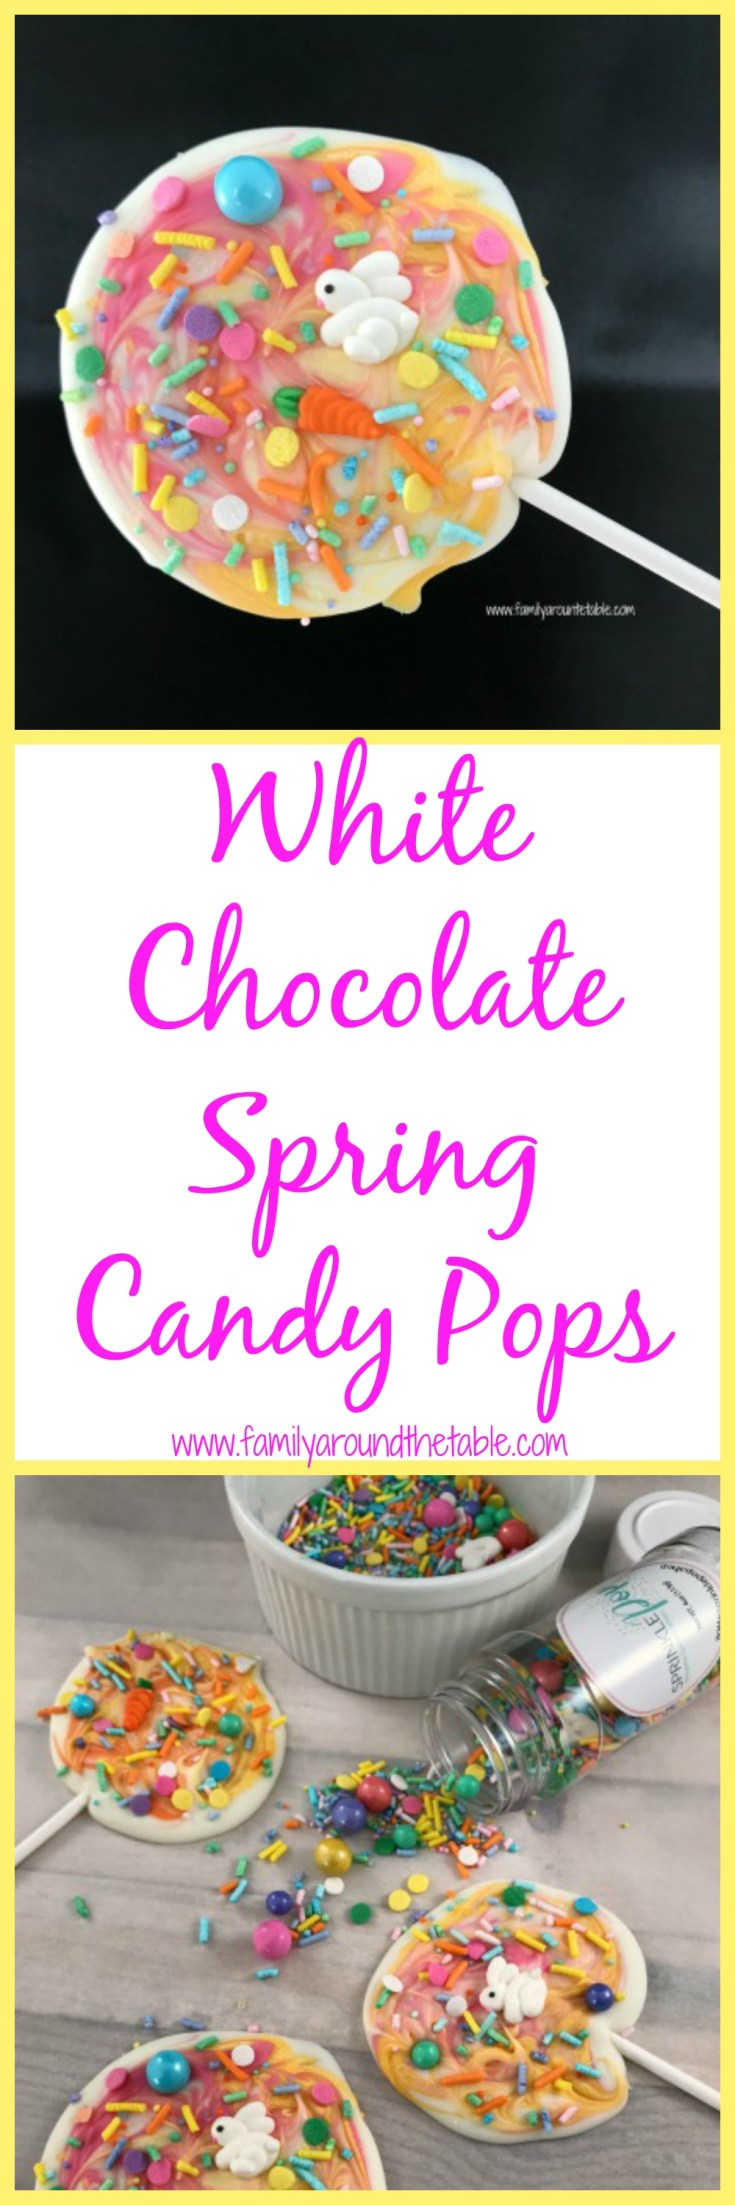 Spring is in the air and these white chocolate spring candy pops are a great way to celebrate. Easy to make and fun for the kids to help.